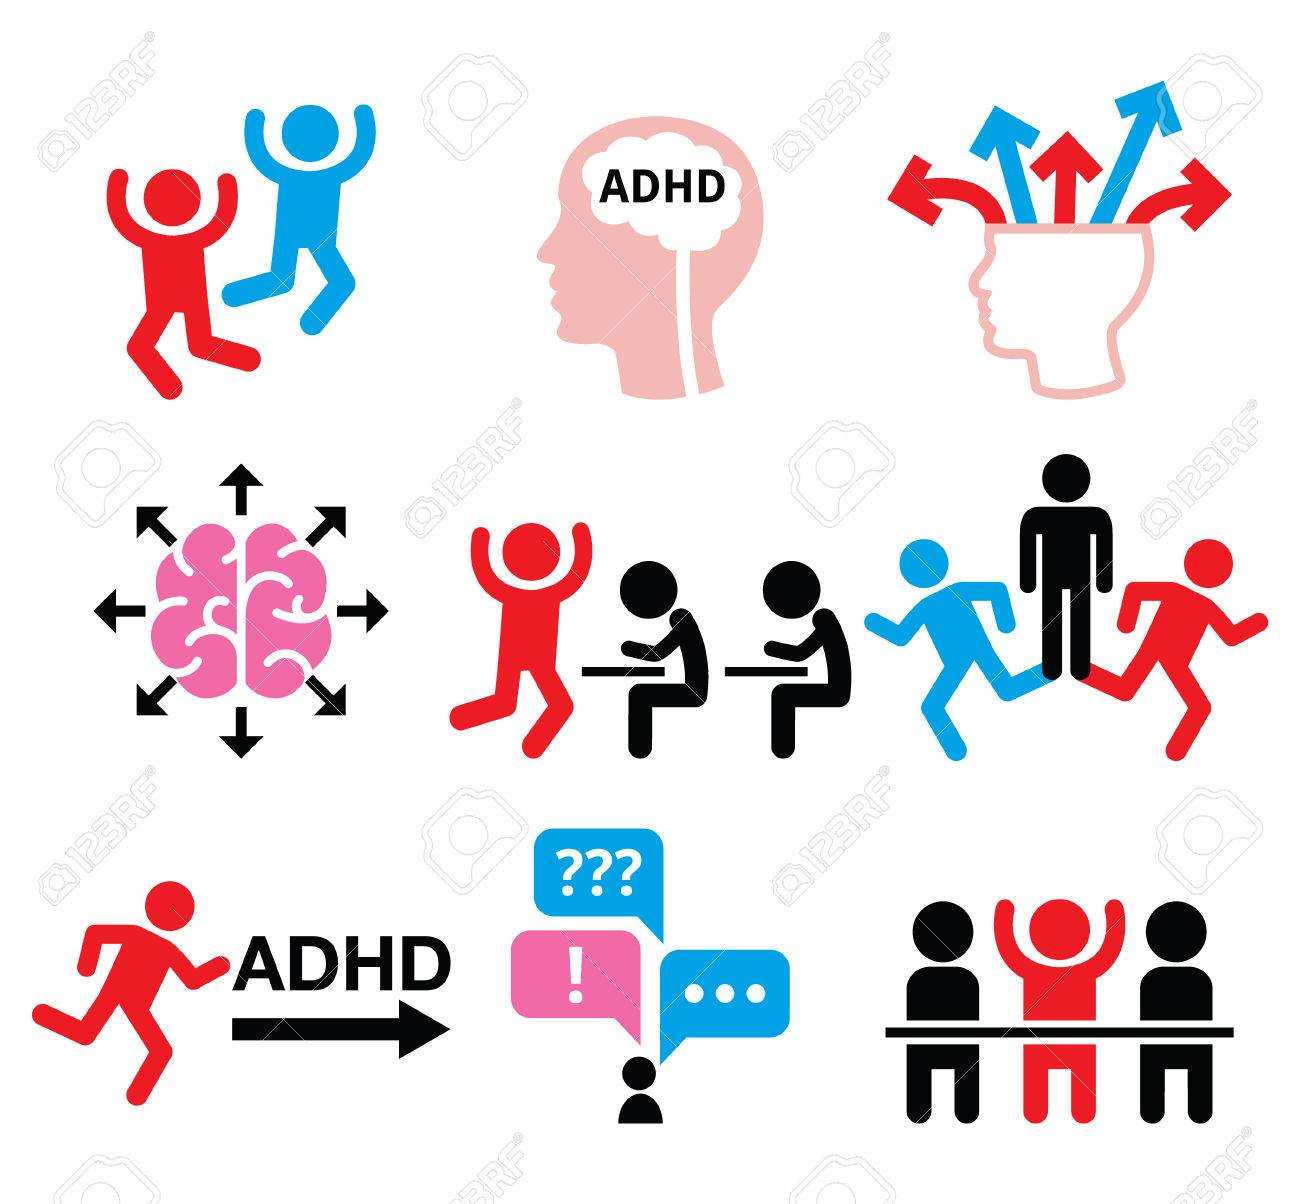 ADHD - Attention deficit hyperactivity disorder vector icons set - 68431516